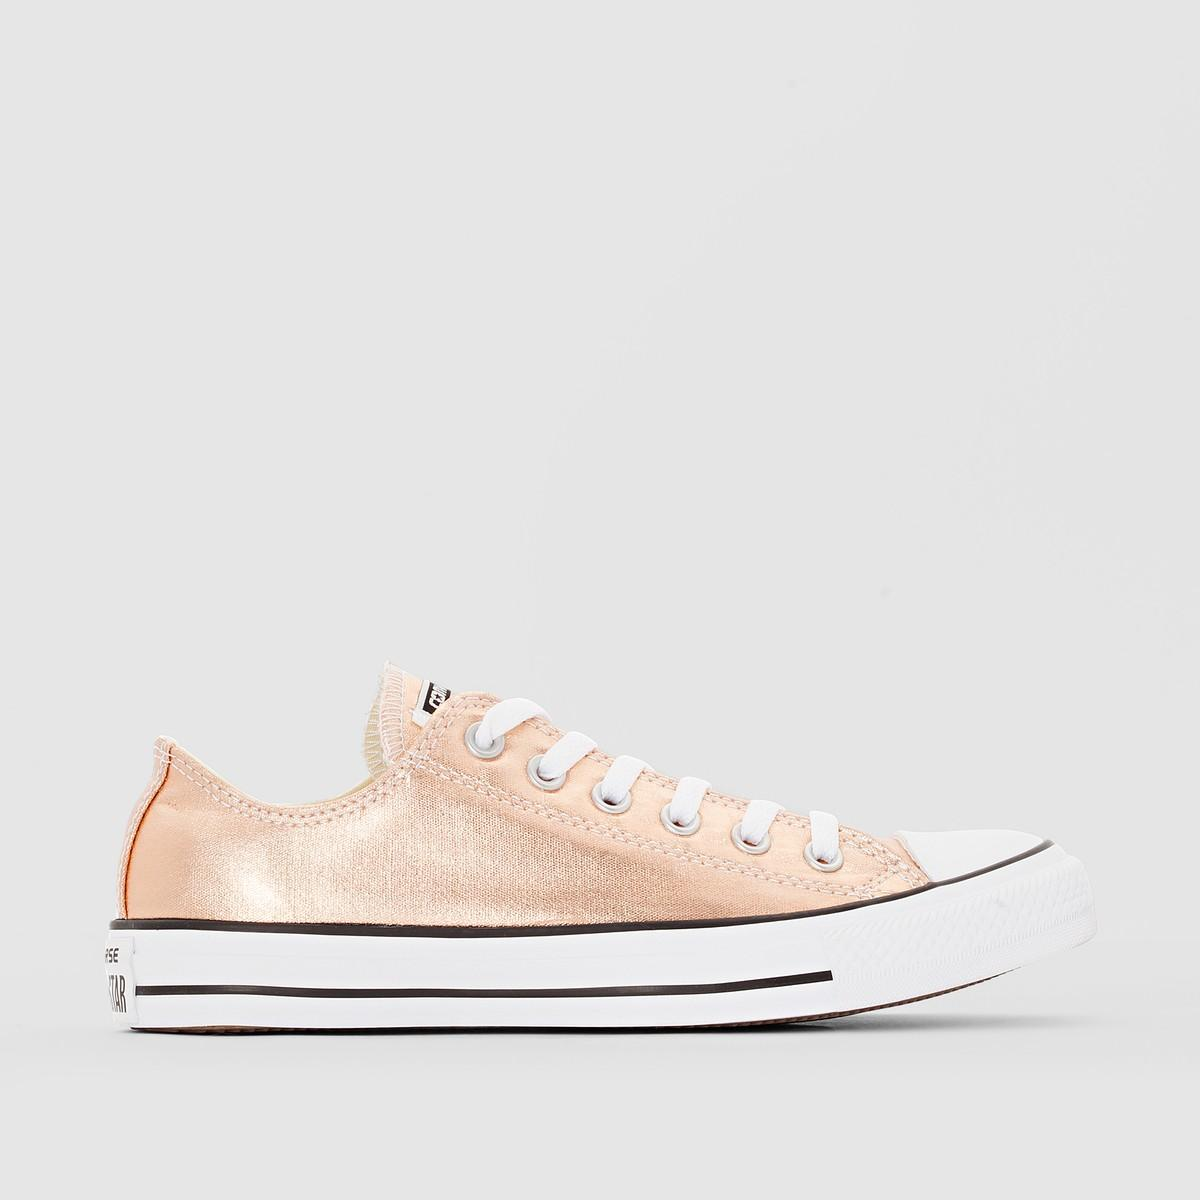 Lyst - Converse Baskets Chuck Taylor All Star edd8d26c2639